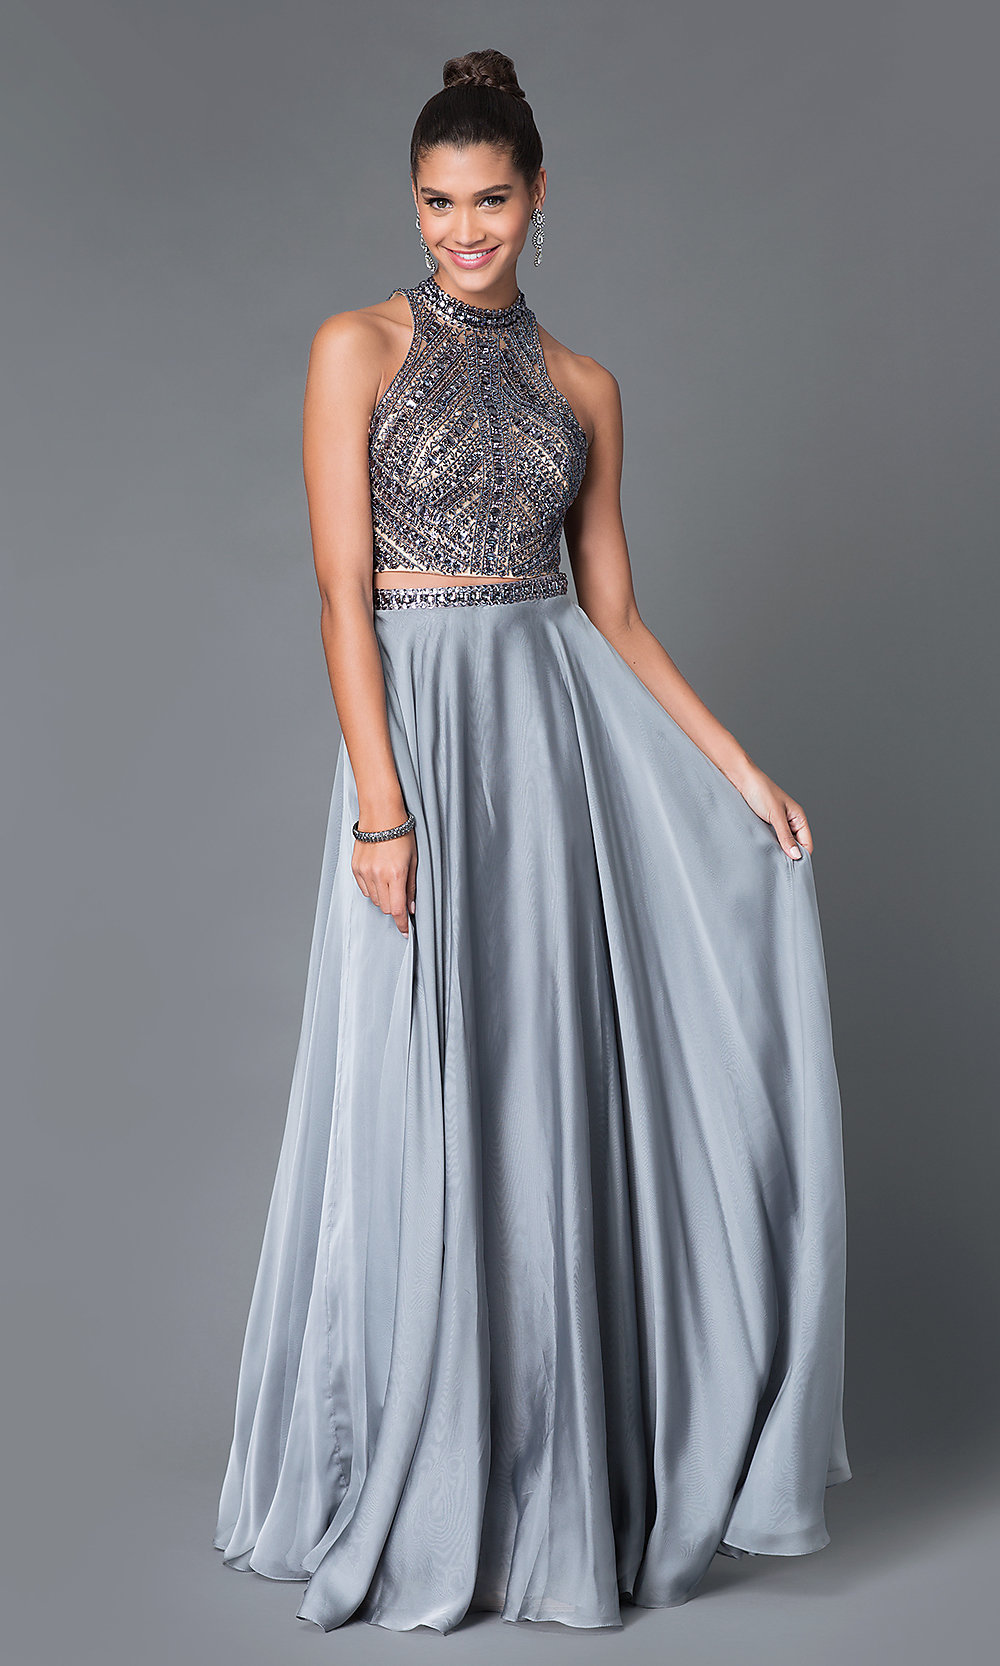 Two Piece Jeweled High Neck Prom Dress Promgirl